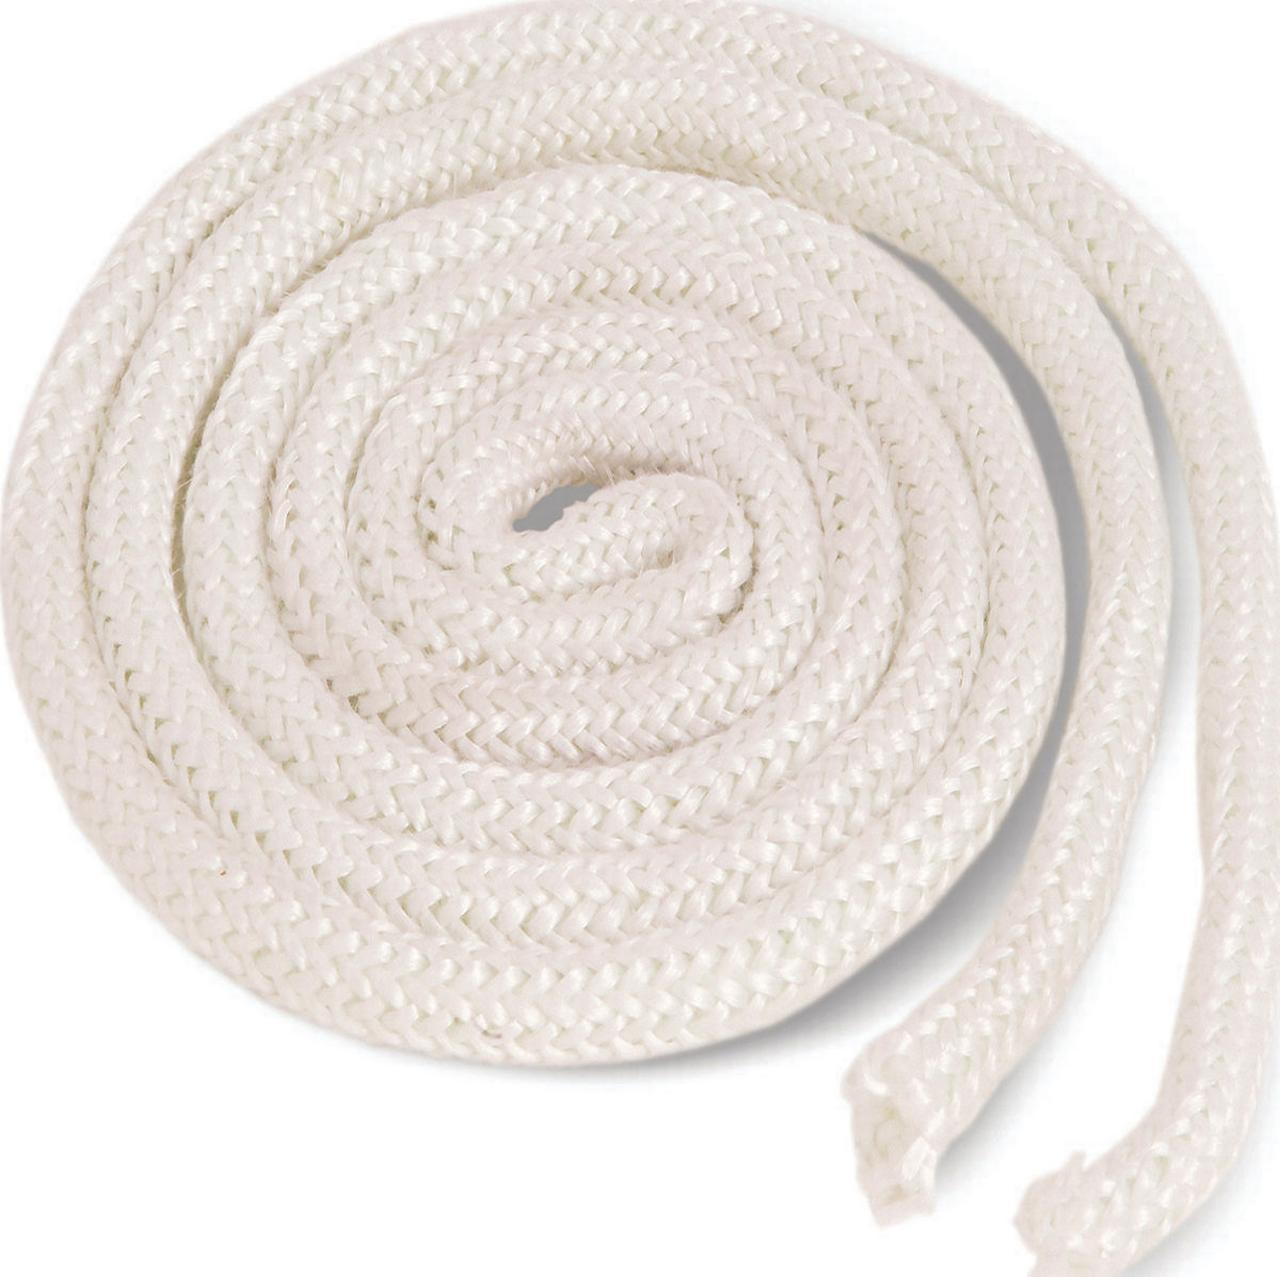 Imperial GA0171 Braided Gasket Rope, 1/2 in Dia x 100 ft L